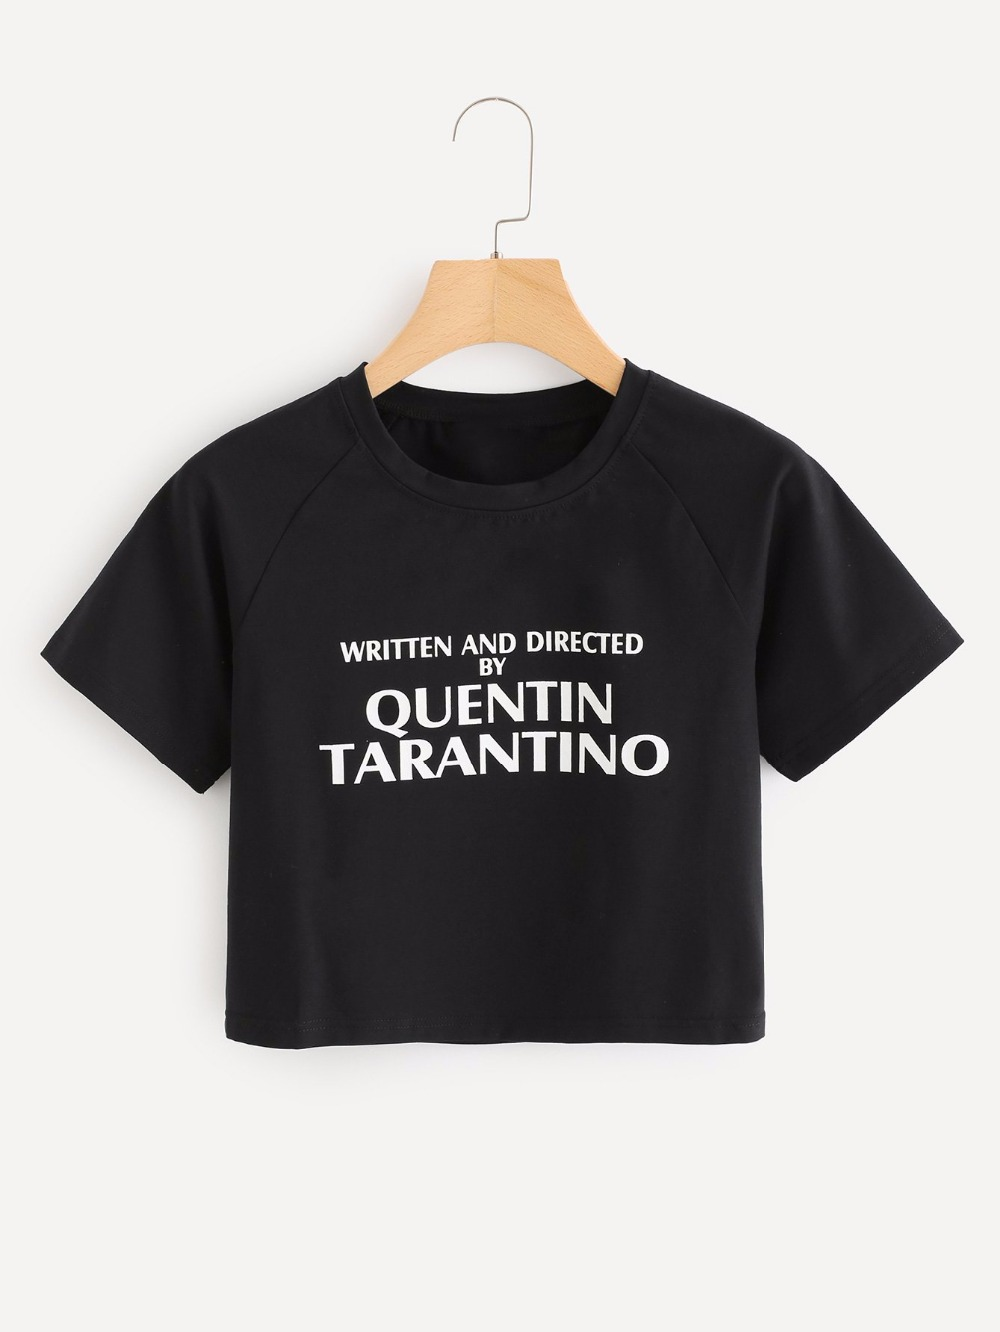 written-and-directed-by-quentin-font-b-tarantino-b-font-crop-tops-slogan-short-tees-90s-women-fashion-cotton-aesthetic-tumblr-tops-t-shirt